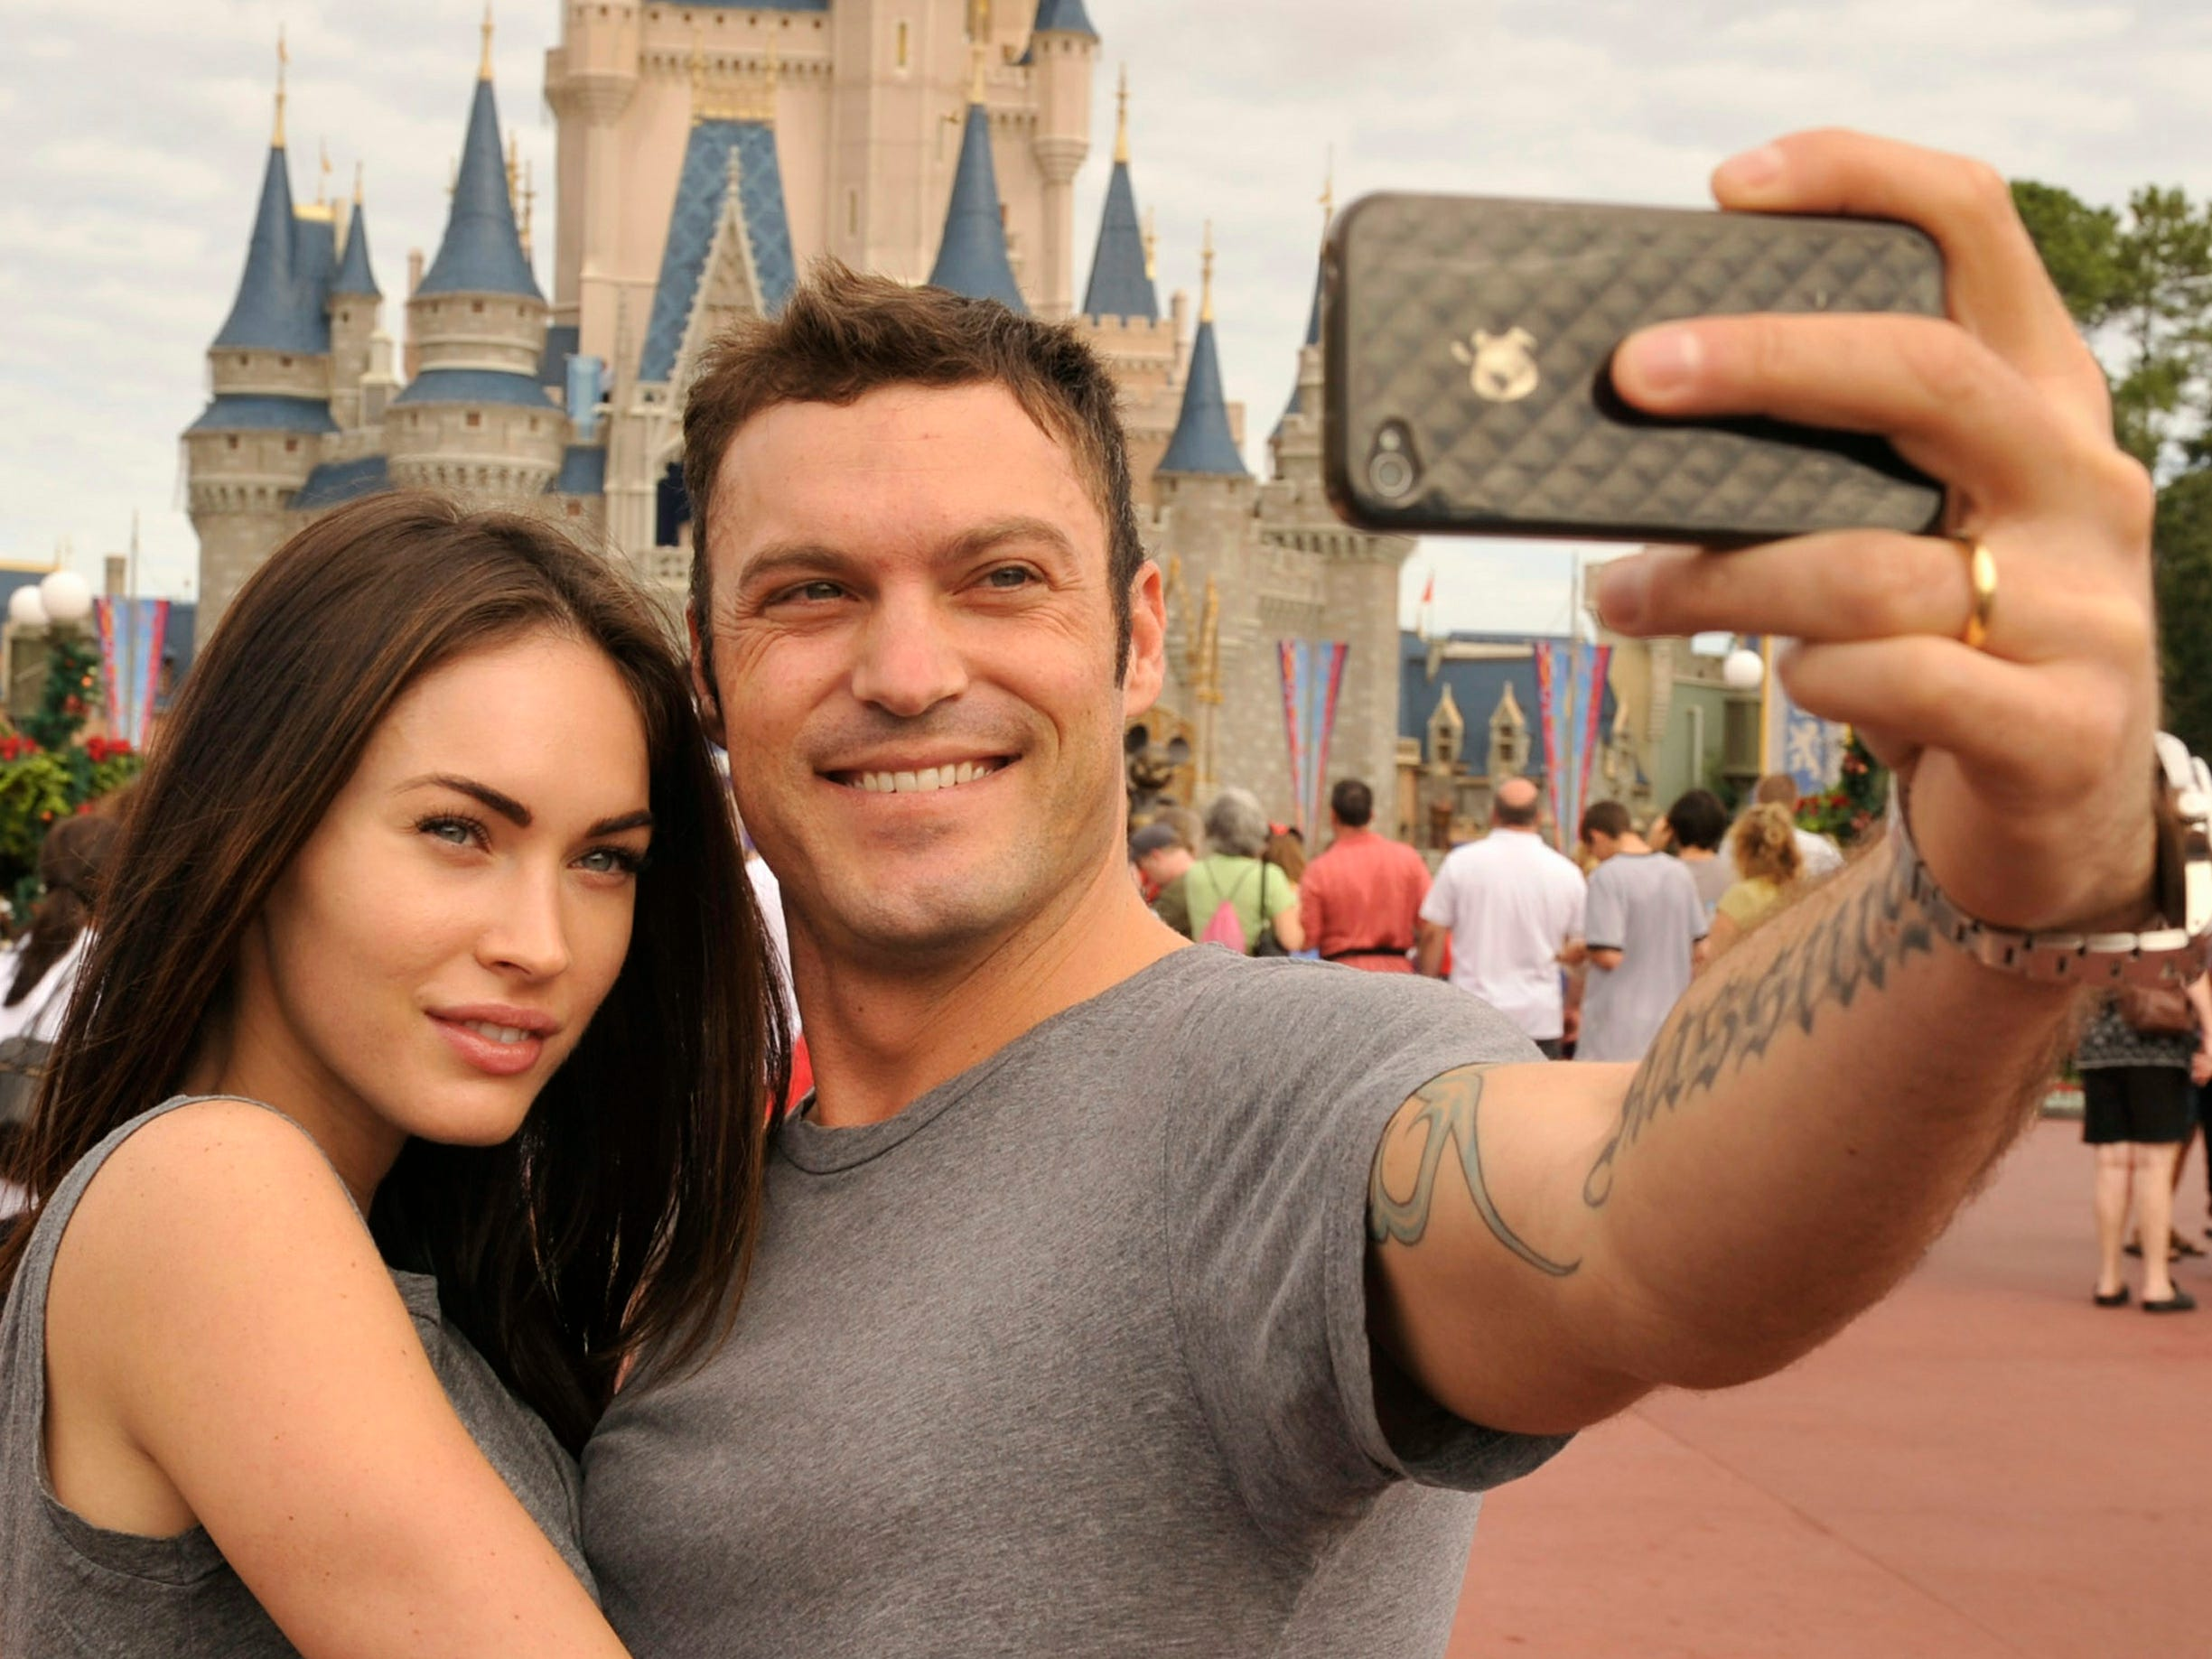 """ORG XMIT: 106794661 LAKE BUENA VISTA, FL - NOVEMBER 26:  In this handout photo provided by Disney, actor Brian Austin Green (right) and his wife, actress/model Megan Fox (left), take a souvenir photo in the Magic Kingdom November 26, 2010 in Lake Buena Vista, Florida.  Green (""""Beverly Hills, 90210"""", """"Desperate Housewives"""") and Fox (""""Transformers,"""" """"Transformers: Revenge of the Fallen"""") were married in June 2010 in Hawaii.  (Photo by Gene Duncan/Disney via Getty Images) ORIG FILE ID: HUSBAND/WIFE BRIAN AUSTIN GREEN AND MEGAN FOX AT WALT DISNEY WOR"""